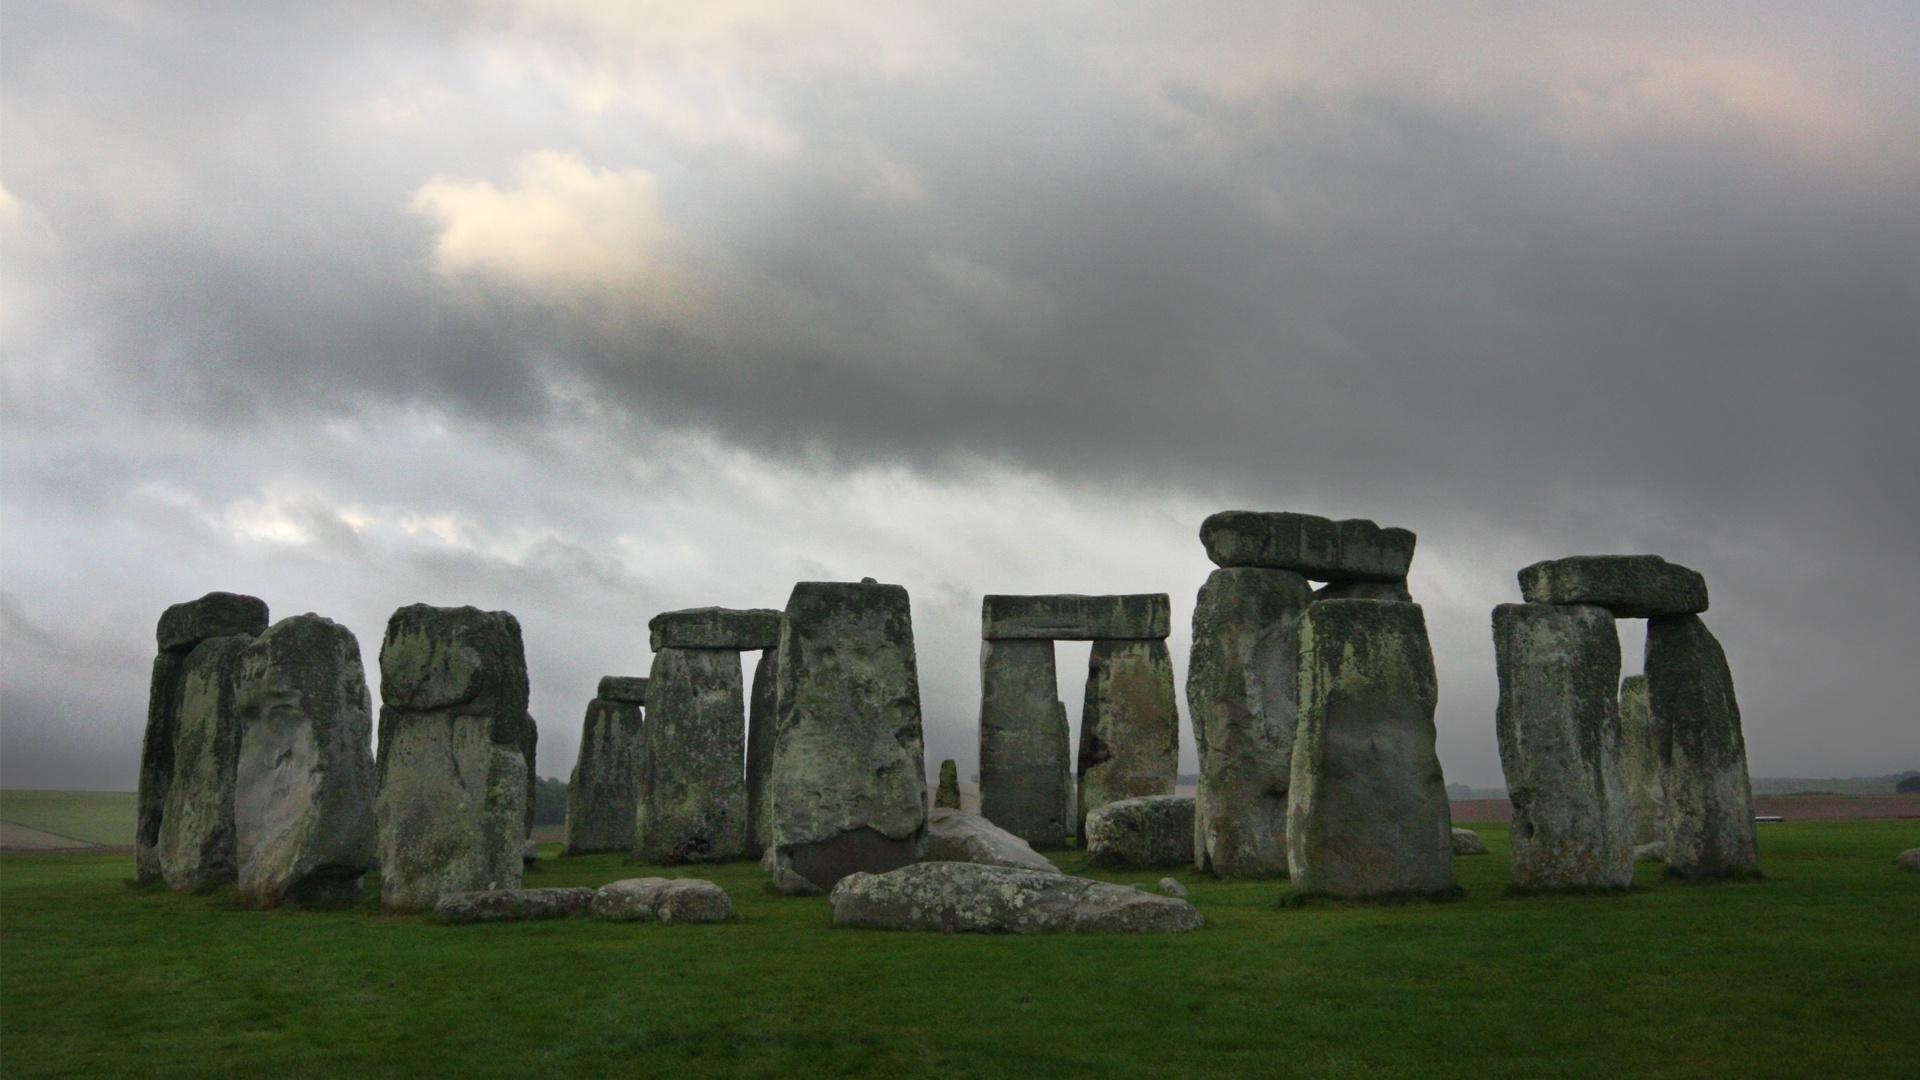 Ghosts of Stonehenge Preview